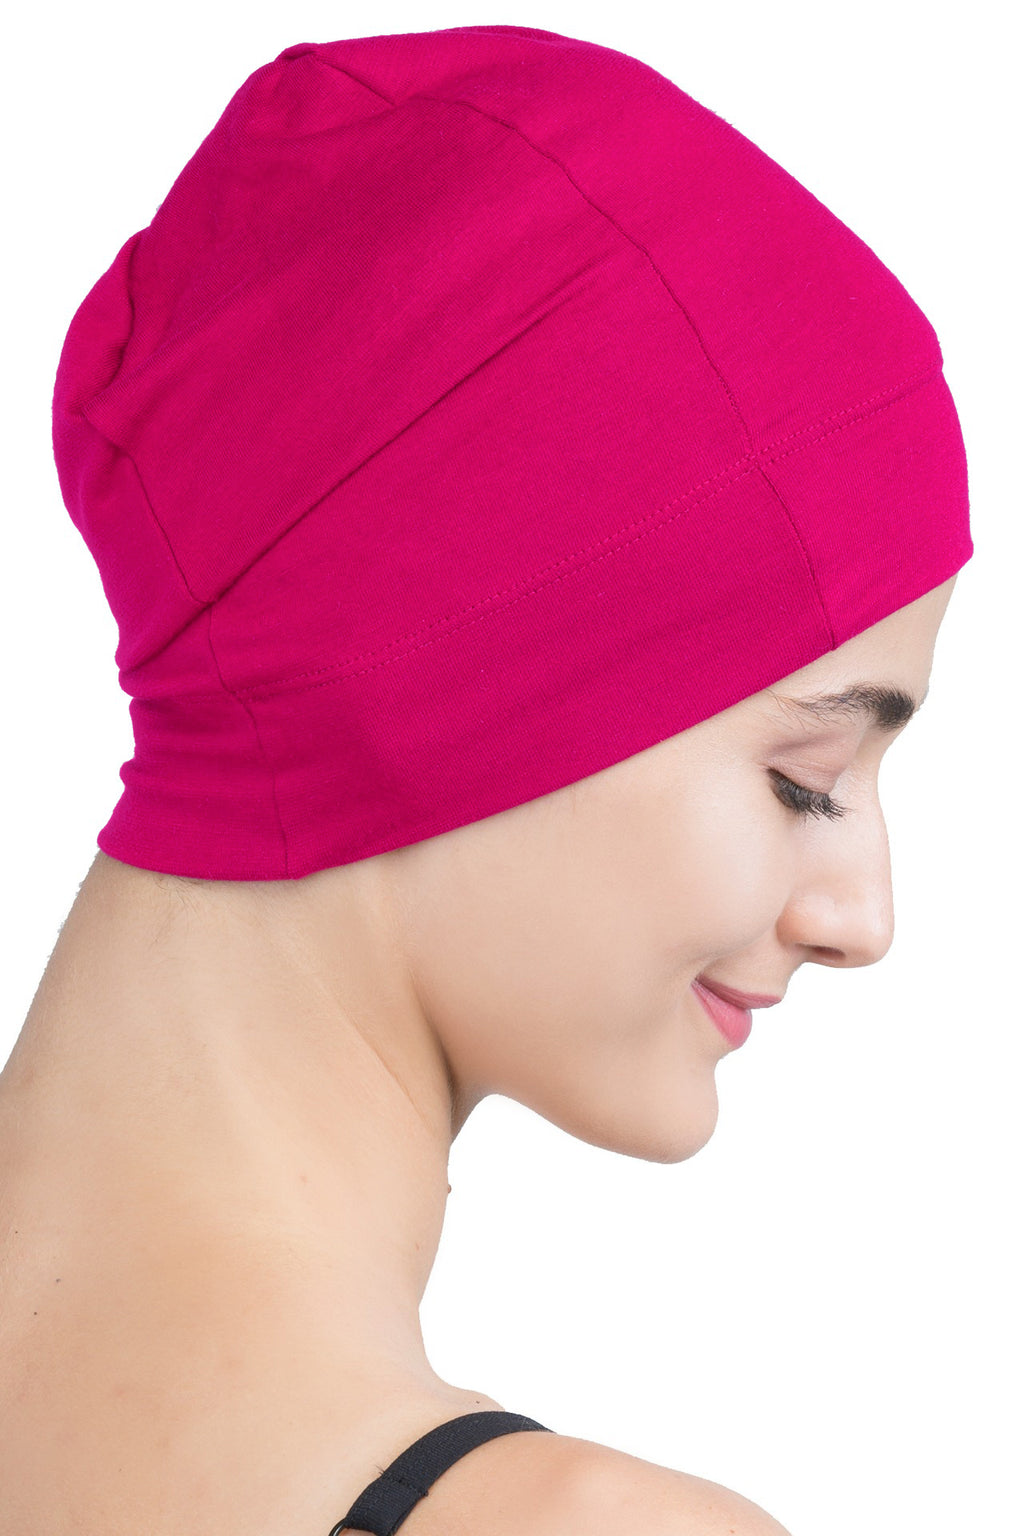 Snug Fit Sleep Cap - Fuschia